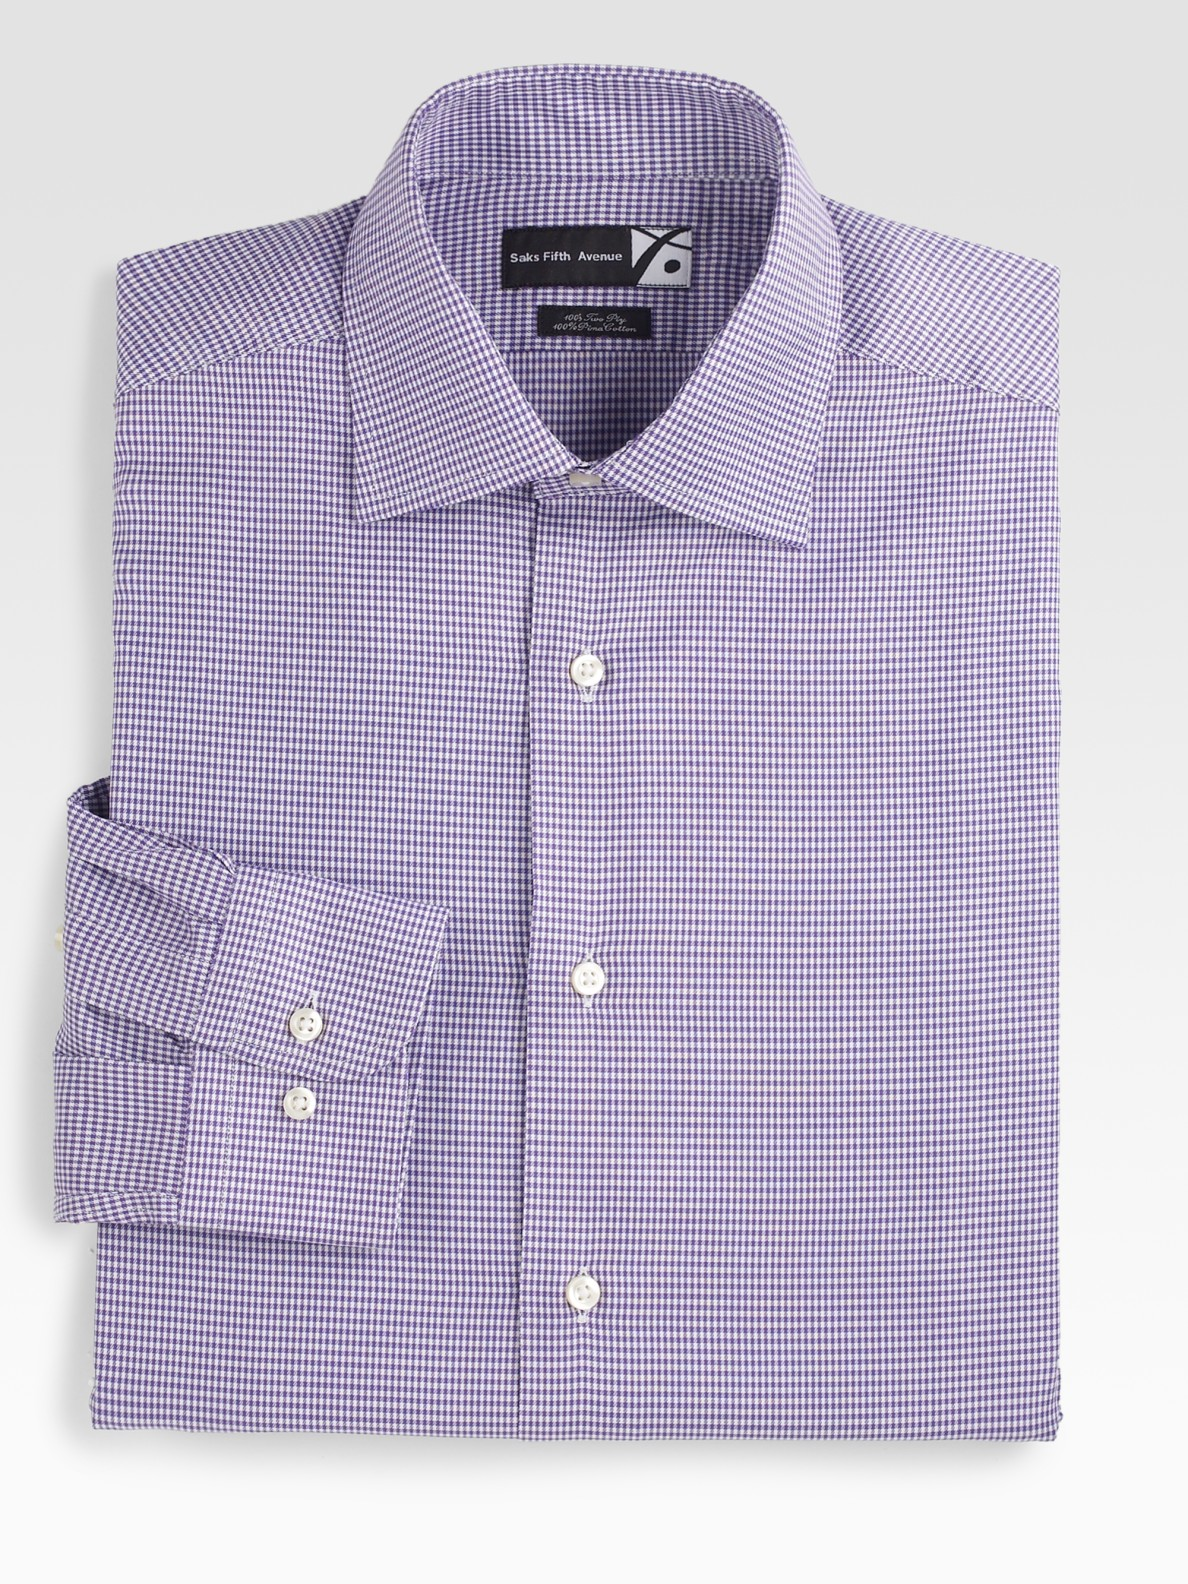 Saks Fifth Avenue Men Collection Houndstooth Dress Shirt